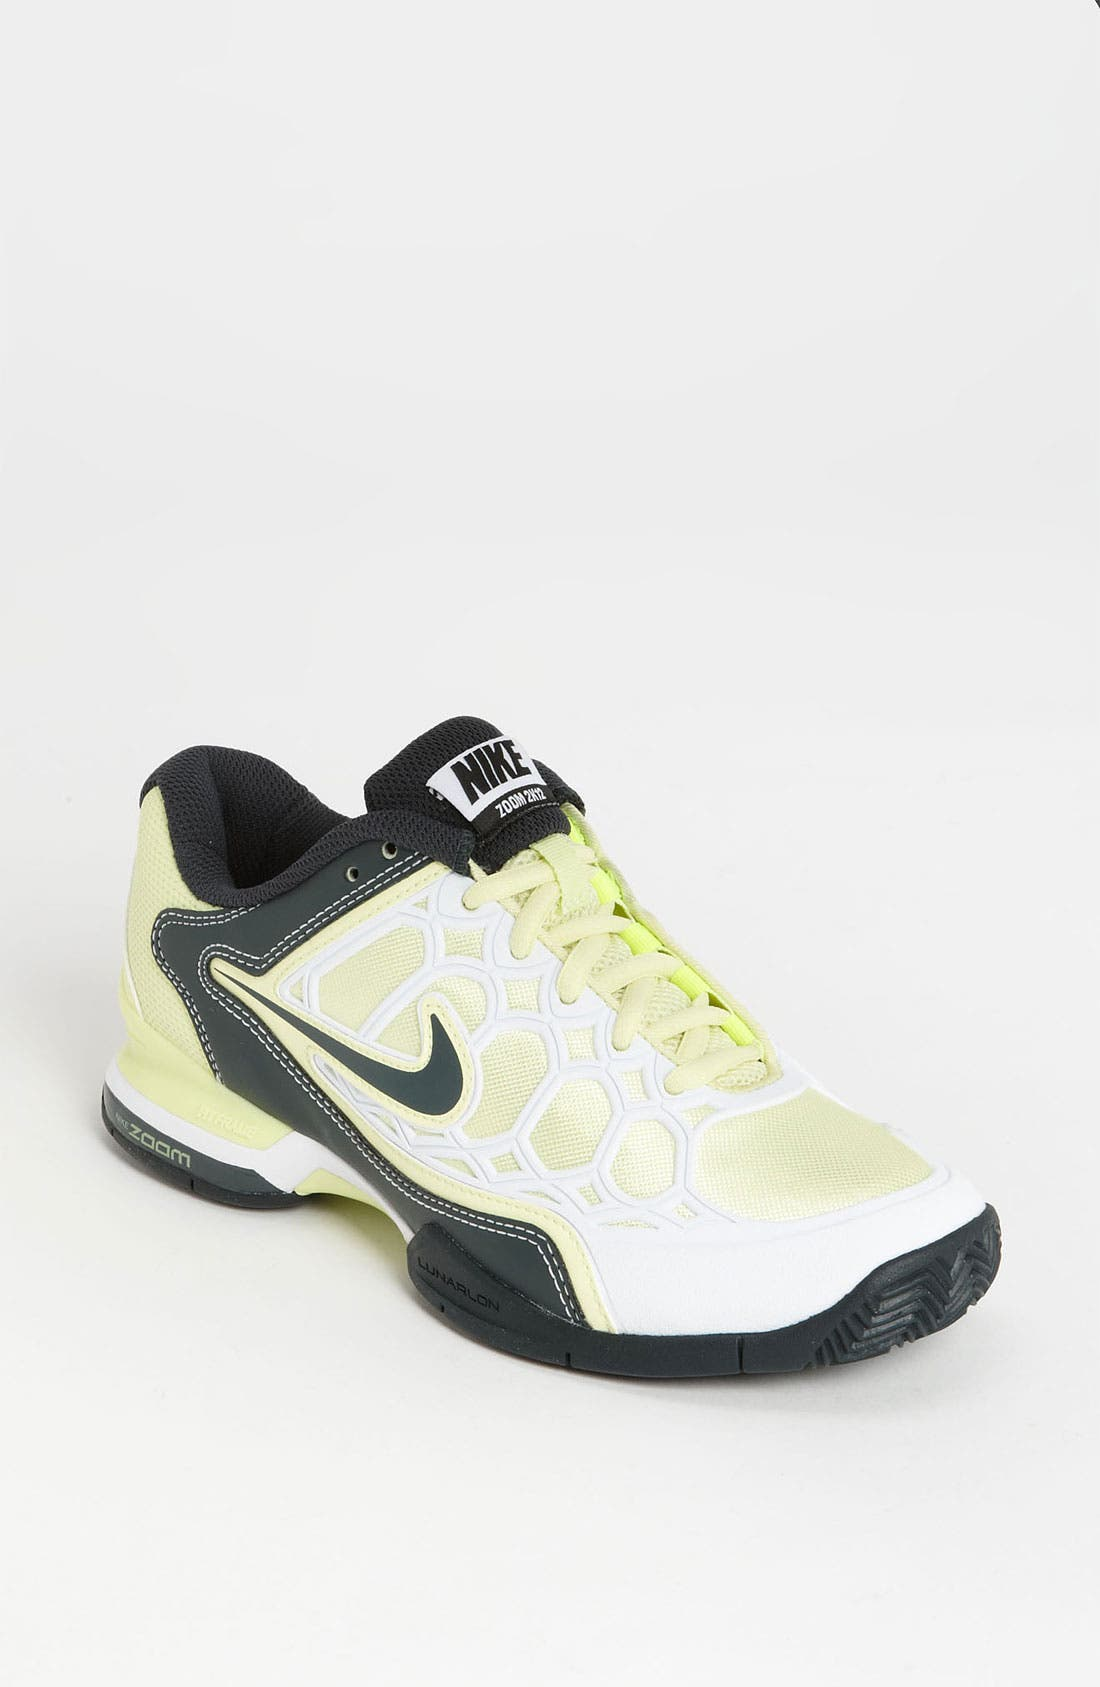 Alternate Image 1 Selected - Nike 'Zoom Breathe 2K12' Tennis Shoe (Women)